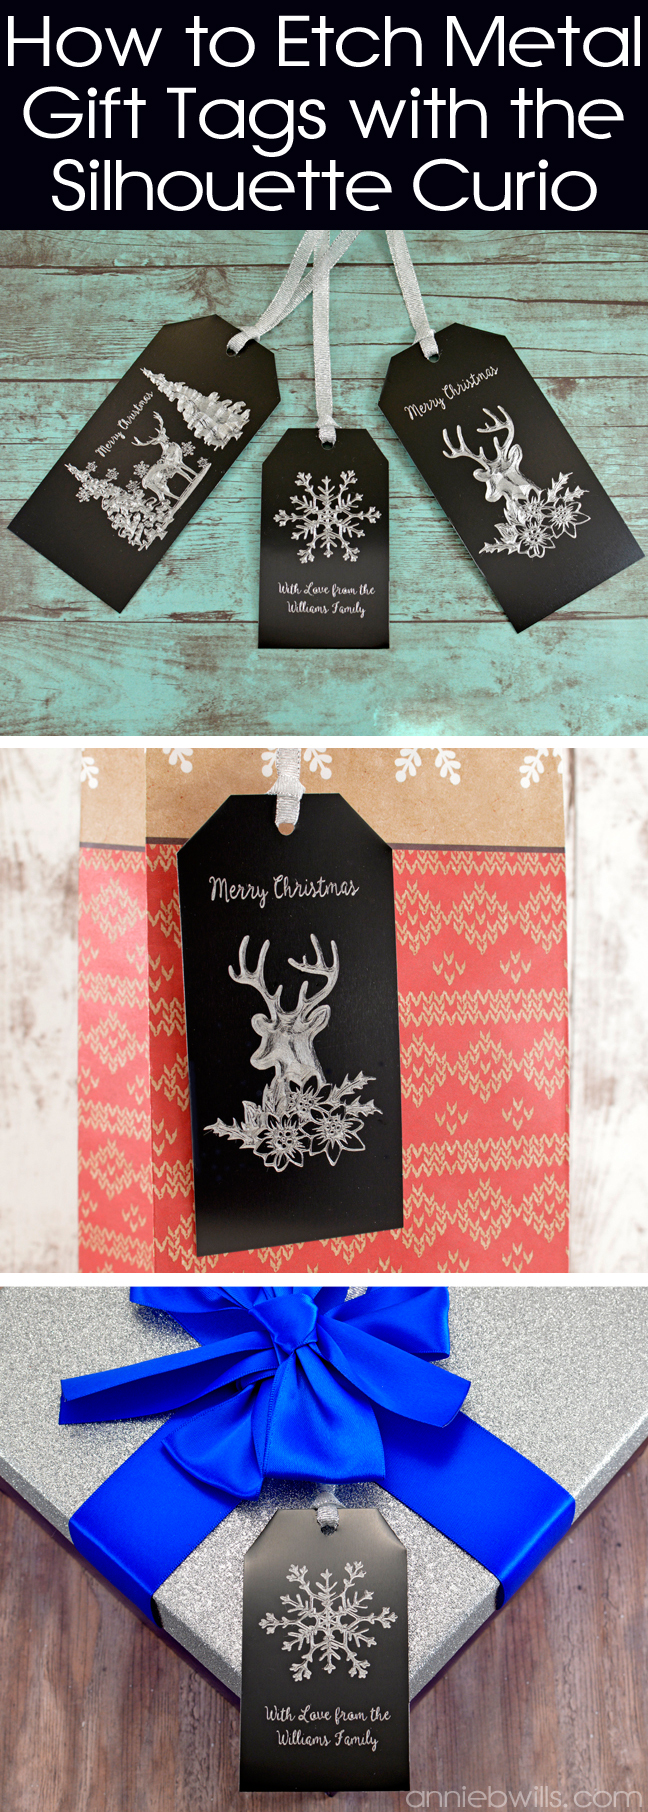 metal-etched-gift-tags-with-the-silhouette-curio-by-annie-williams-collage